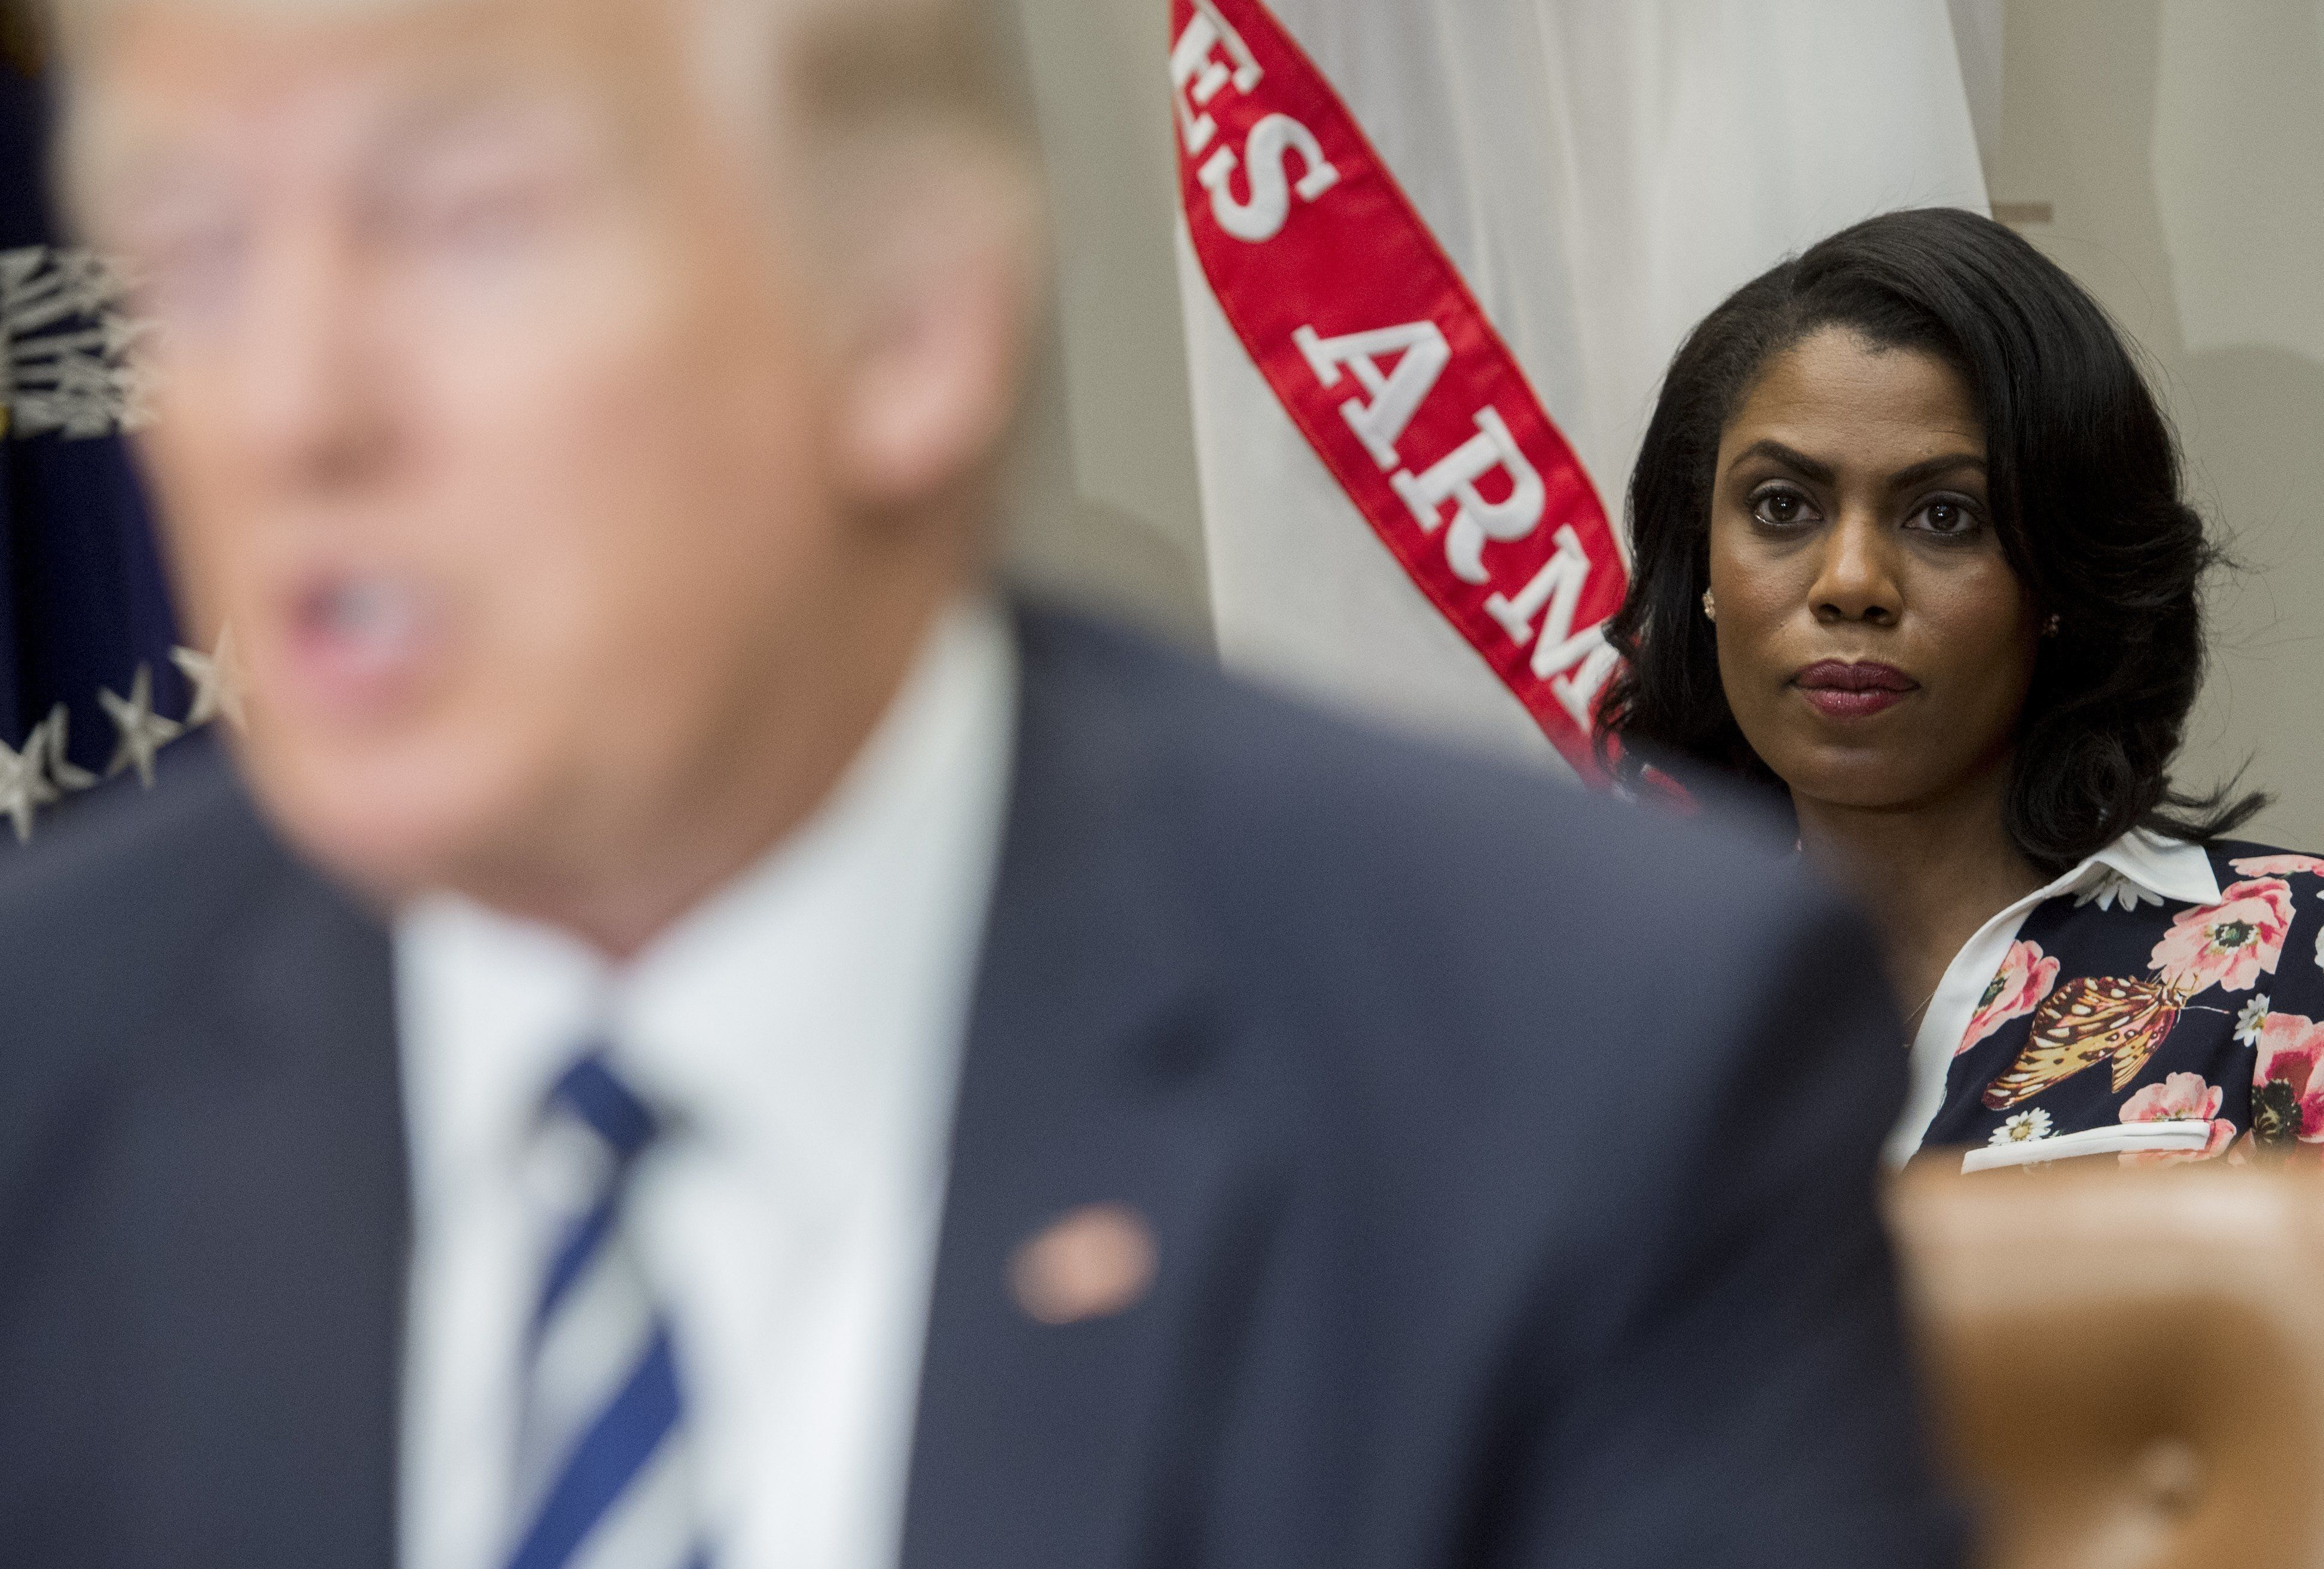 Trump is a bigot who used racial slurs, ex-aide Omarosa says